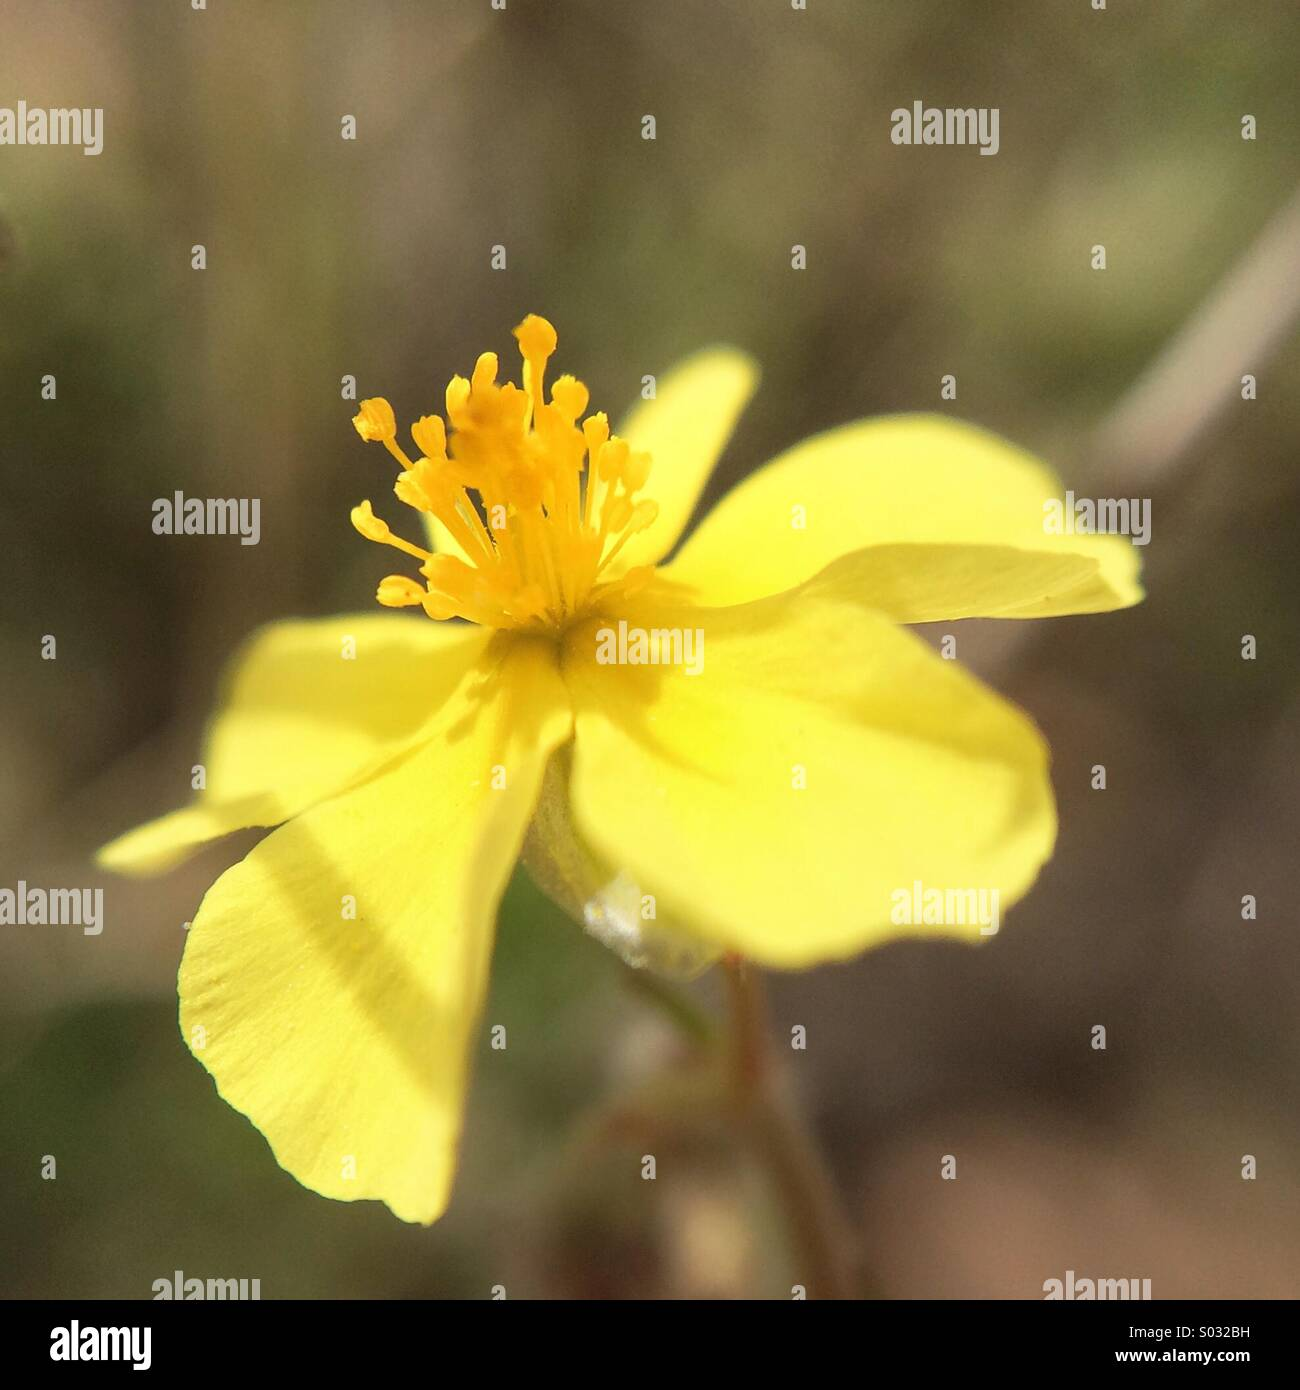 Yellow Spring Flower Five Petals Stock Photos Yellow Spring Flower